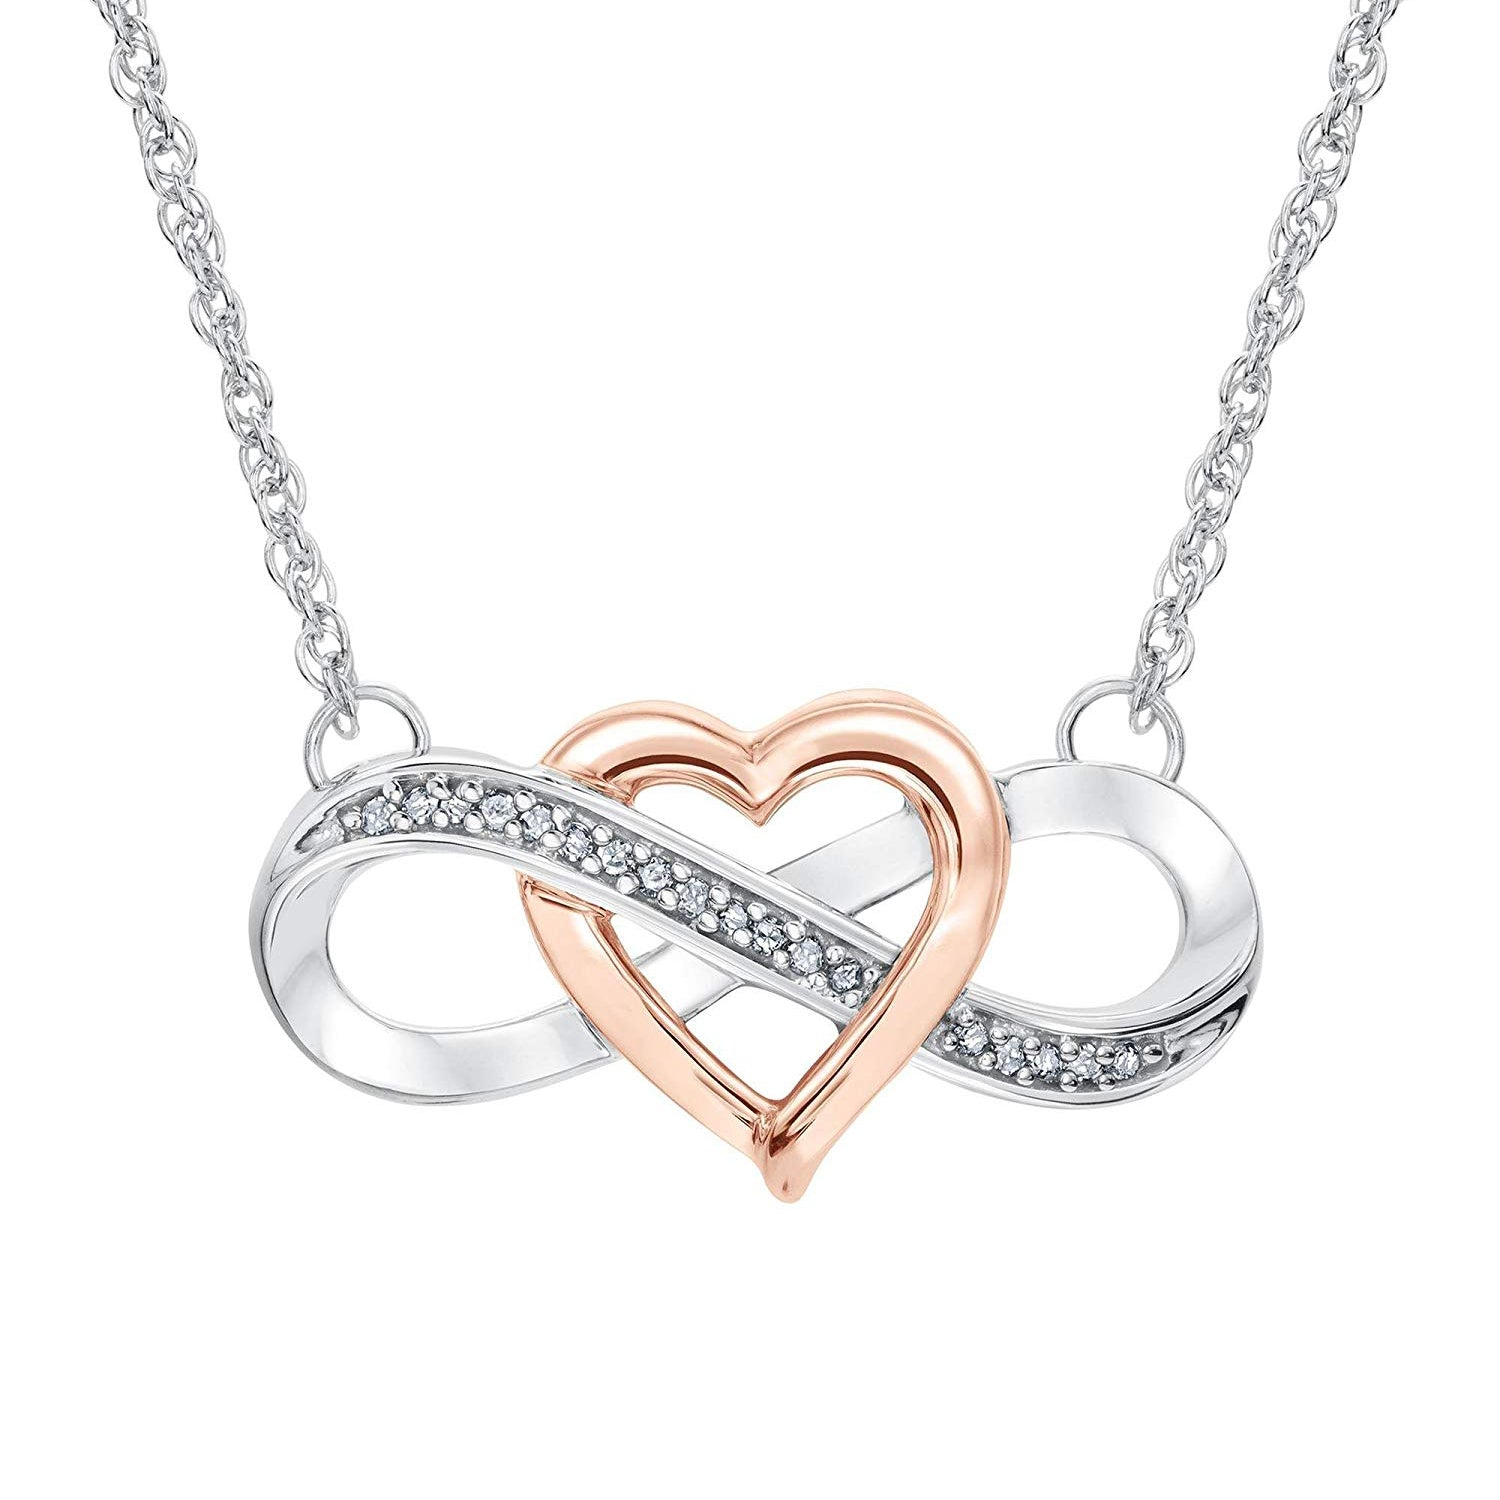 31fbf4be3a1b1 Two-Tone Interlocking Heart Infinity Pendant Necklace - EverMarker